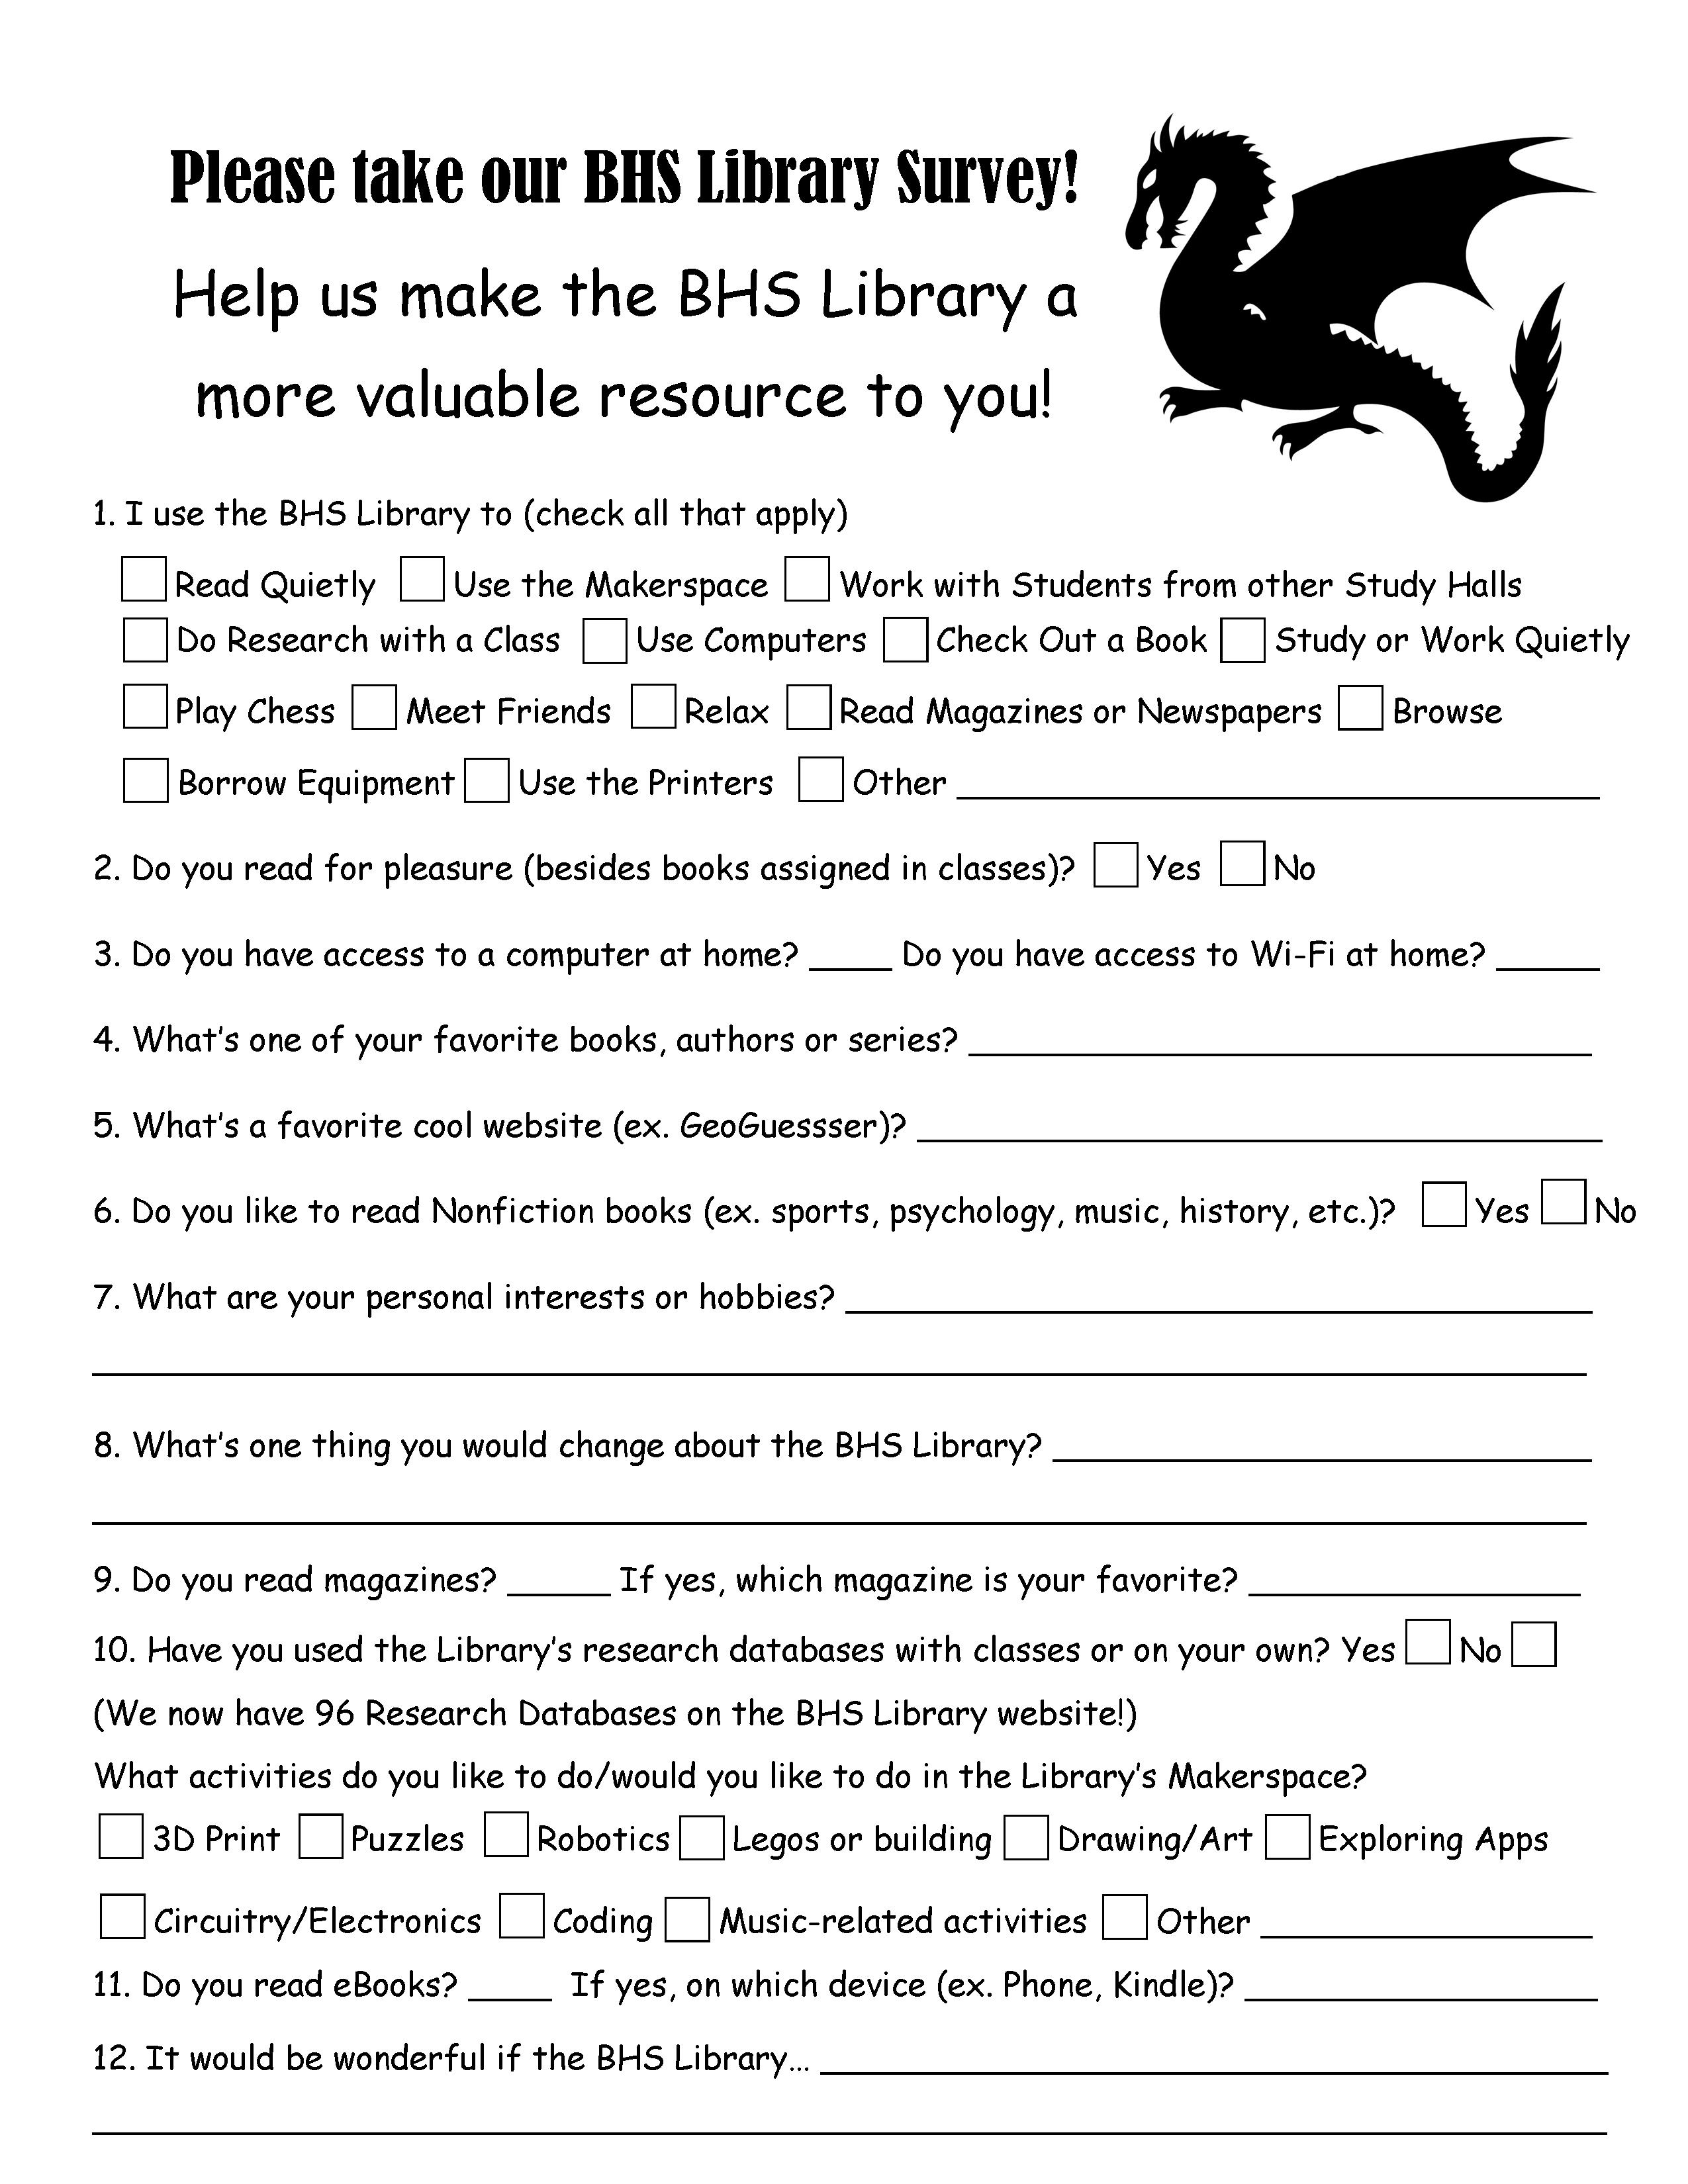 Please take our 2019 BHS Library Survey!   BHS Library